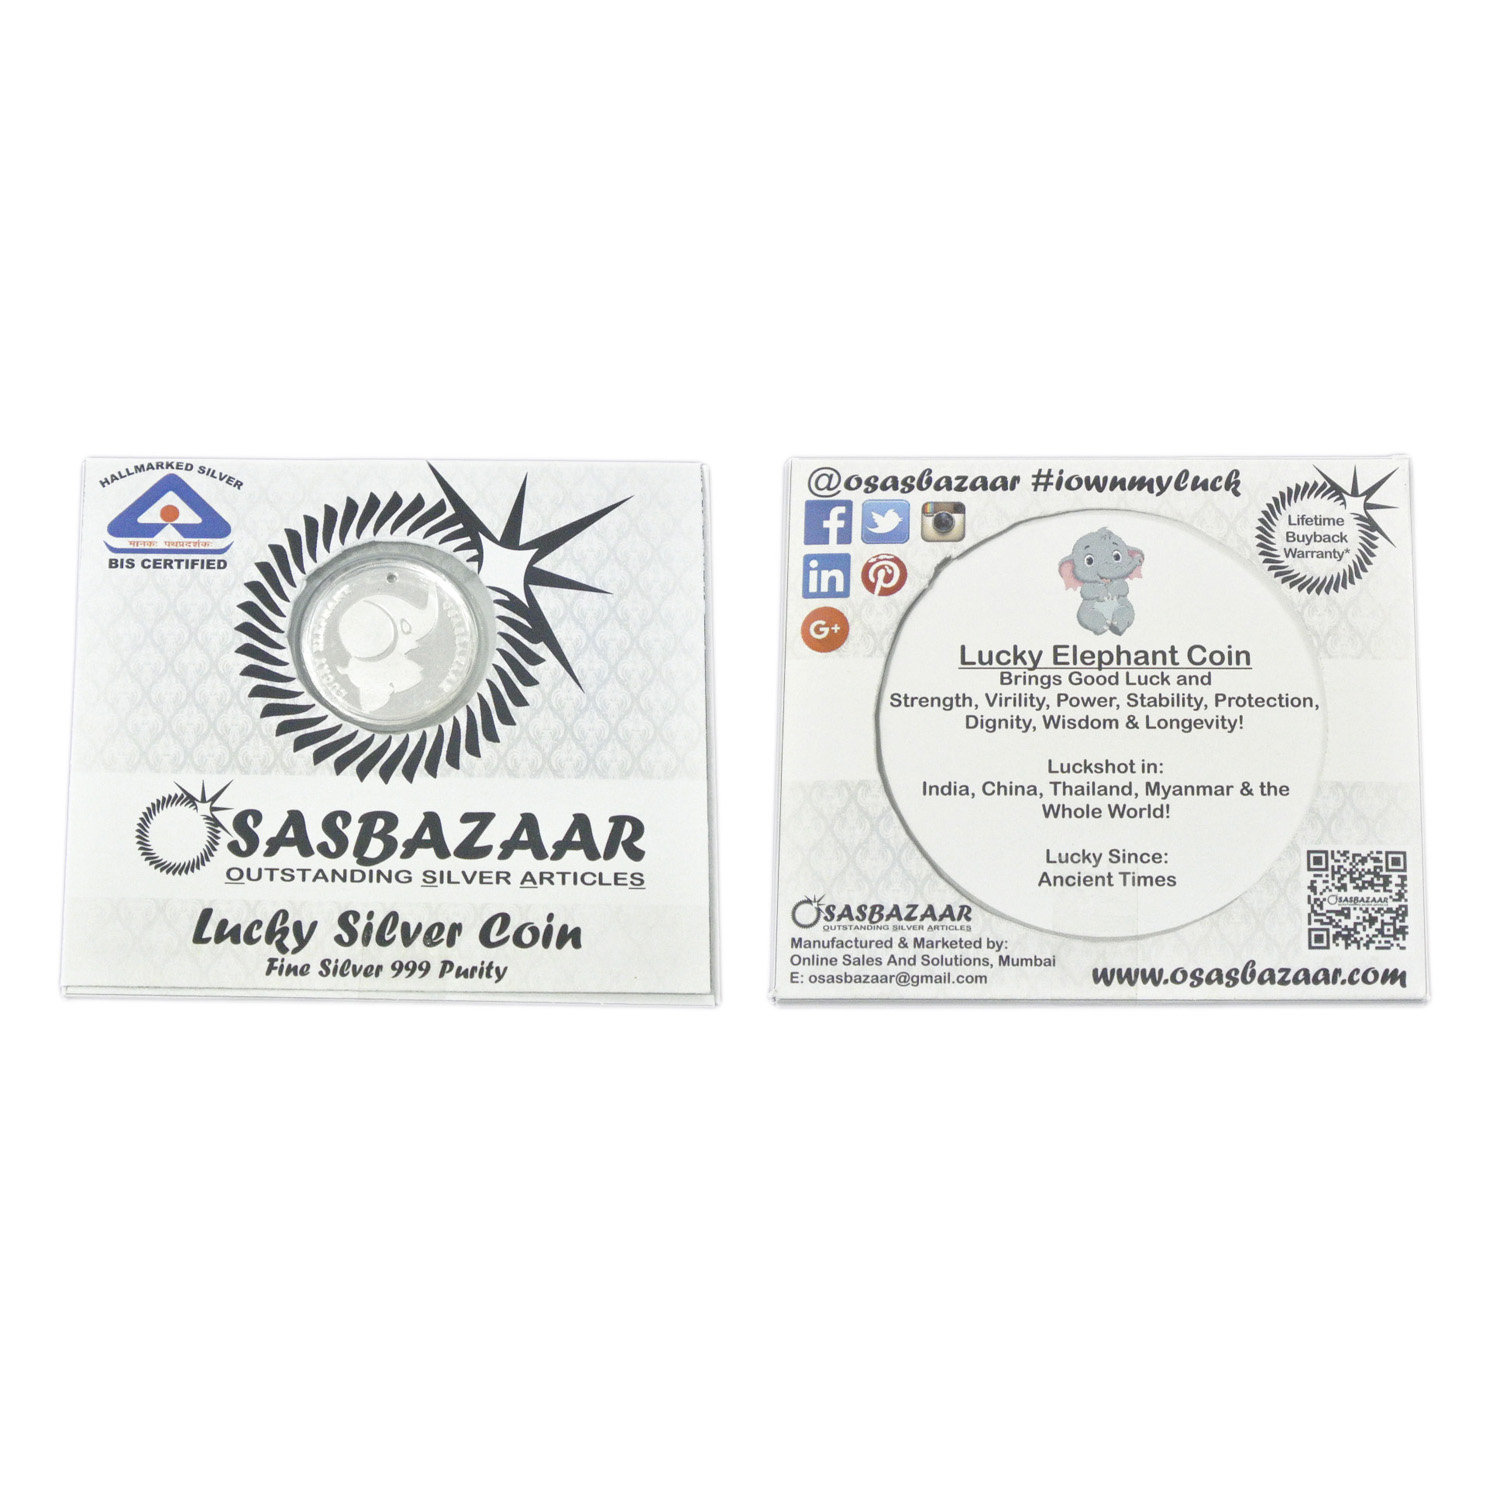 Silver Lucky Elephant Coin Packaging - Front and Back